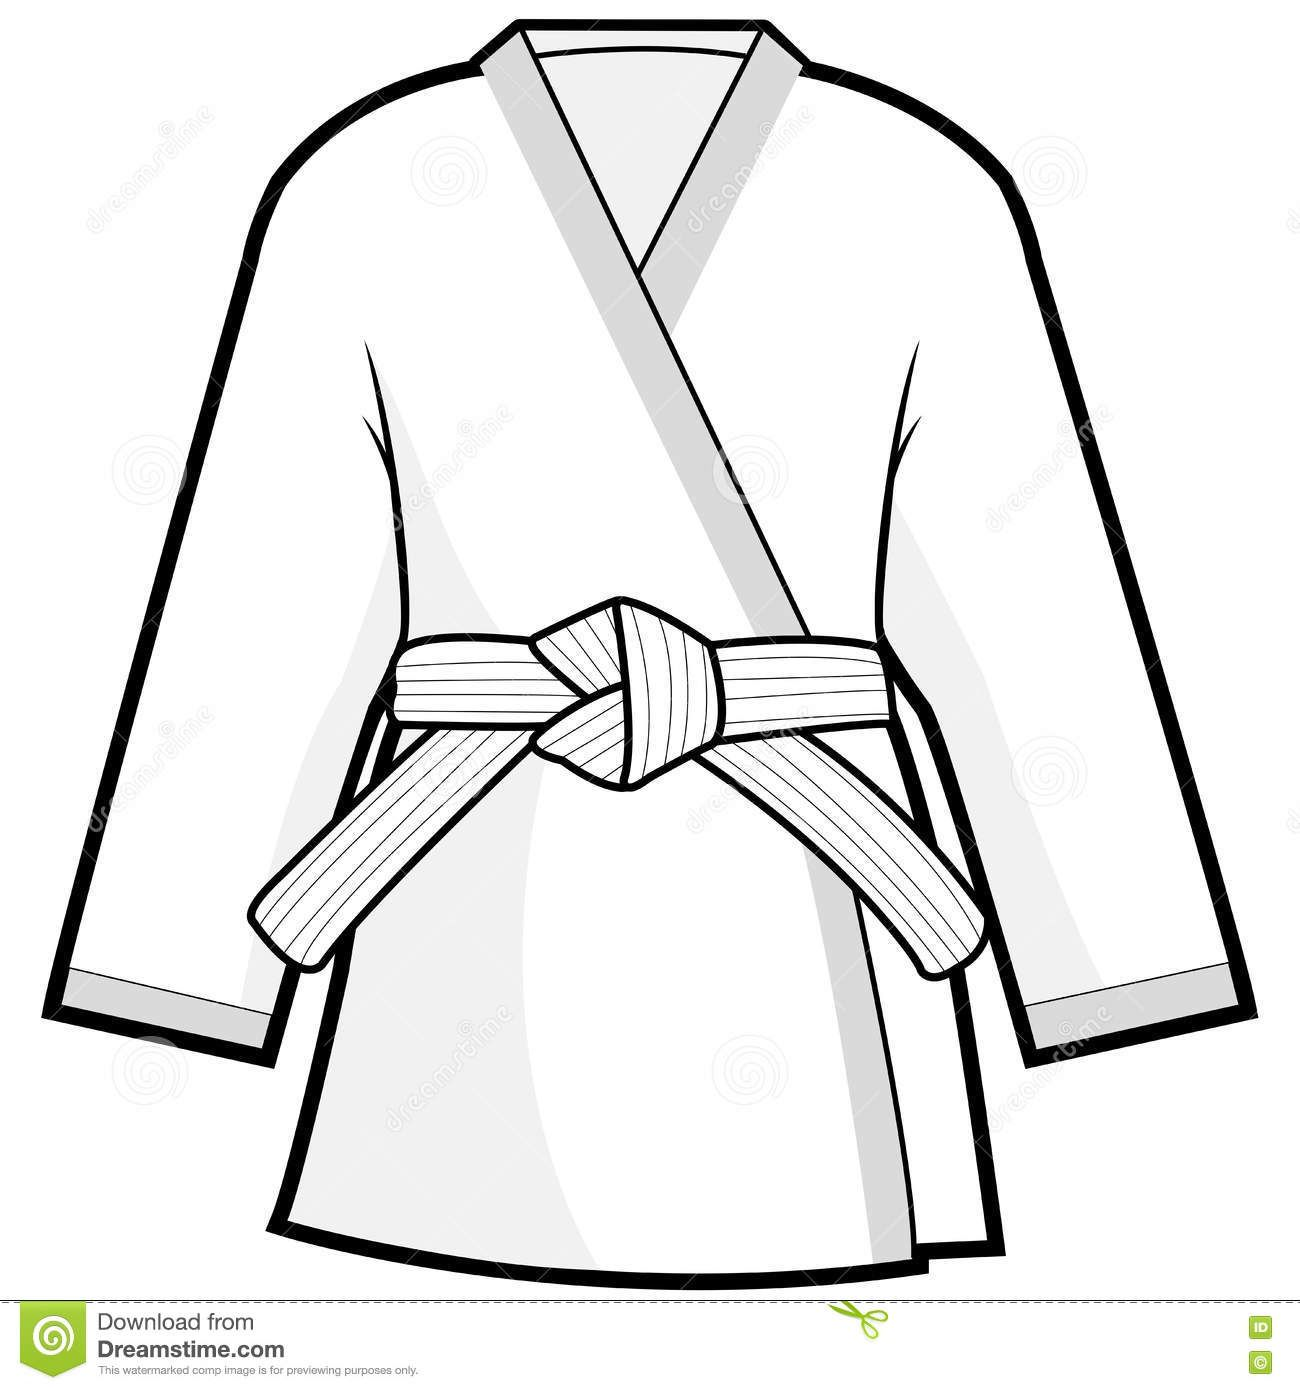 Image Result For Judo Uniform Clipart